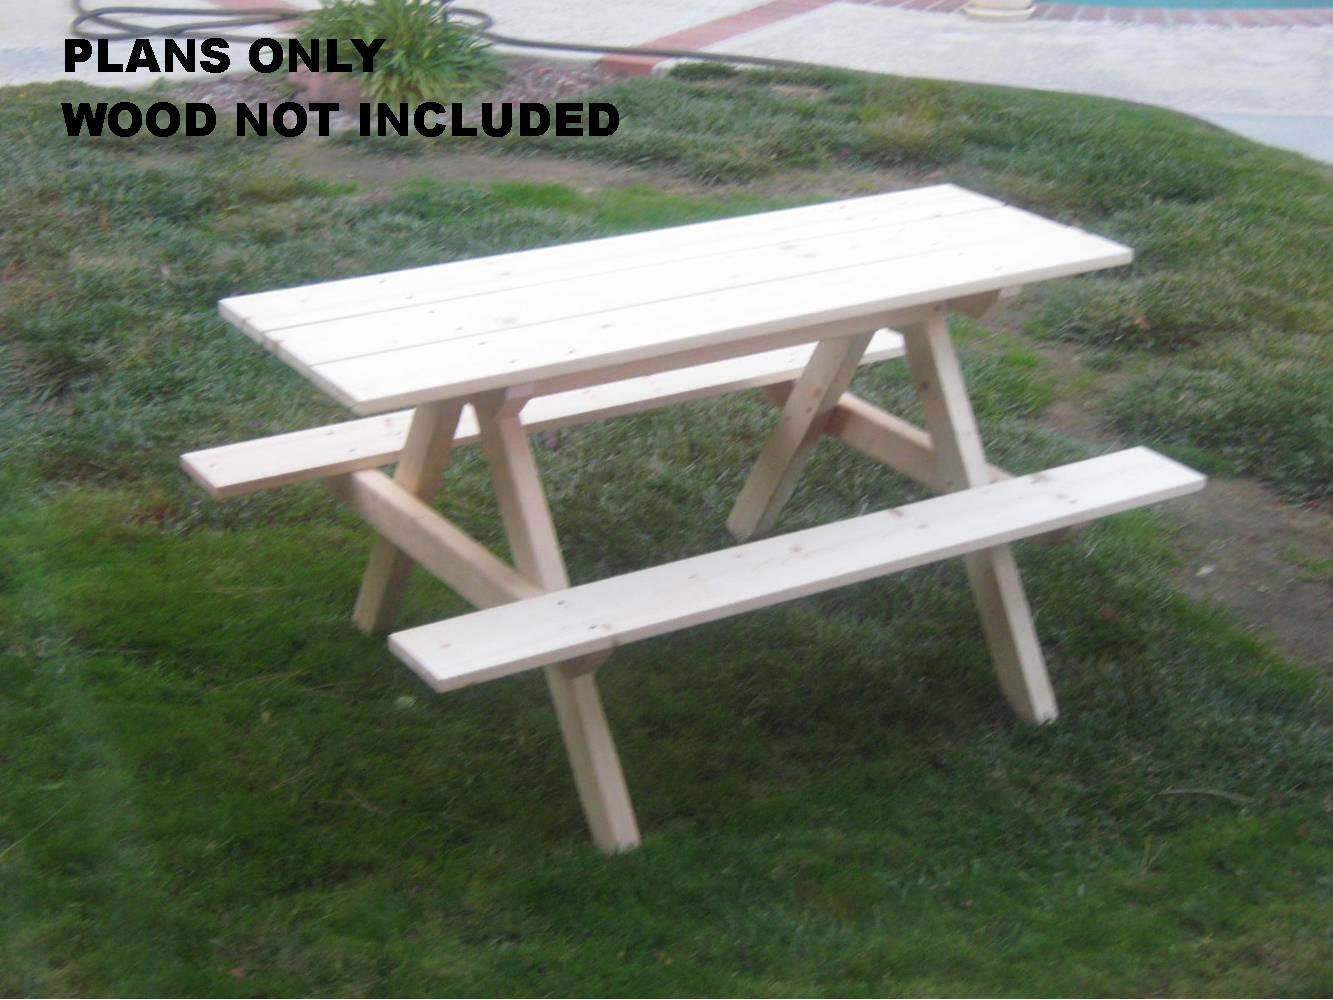 Outdoor Picnic Table : DIY PLANS to make Kids Picnic Table Outdoor by wingstoshop